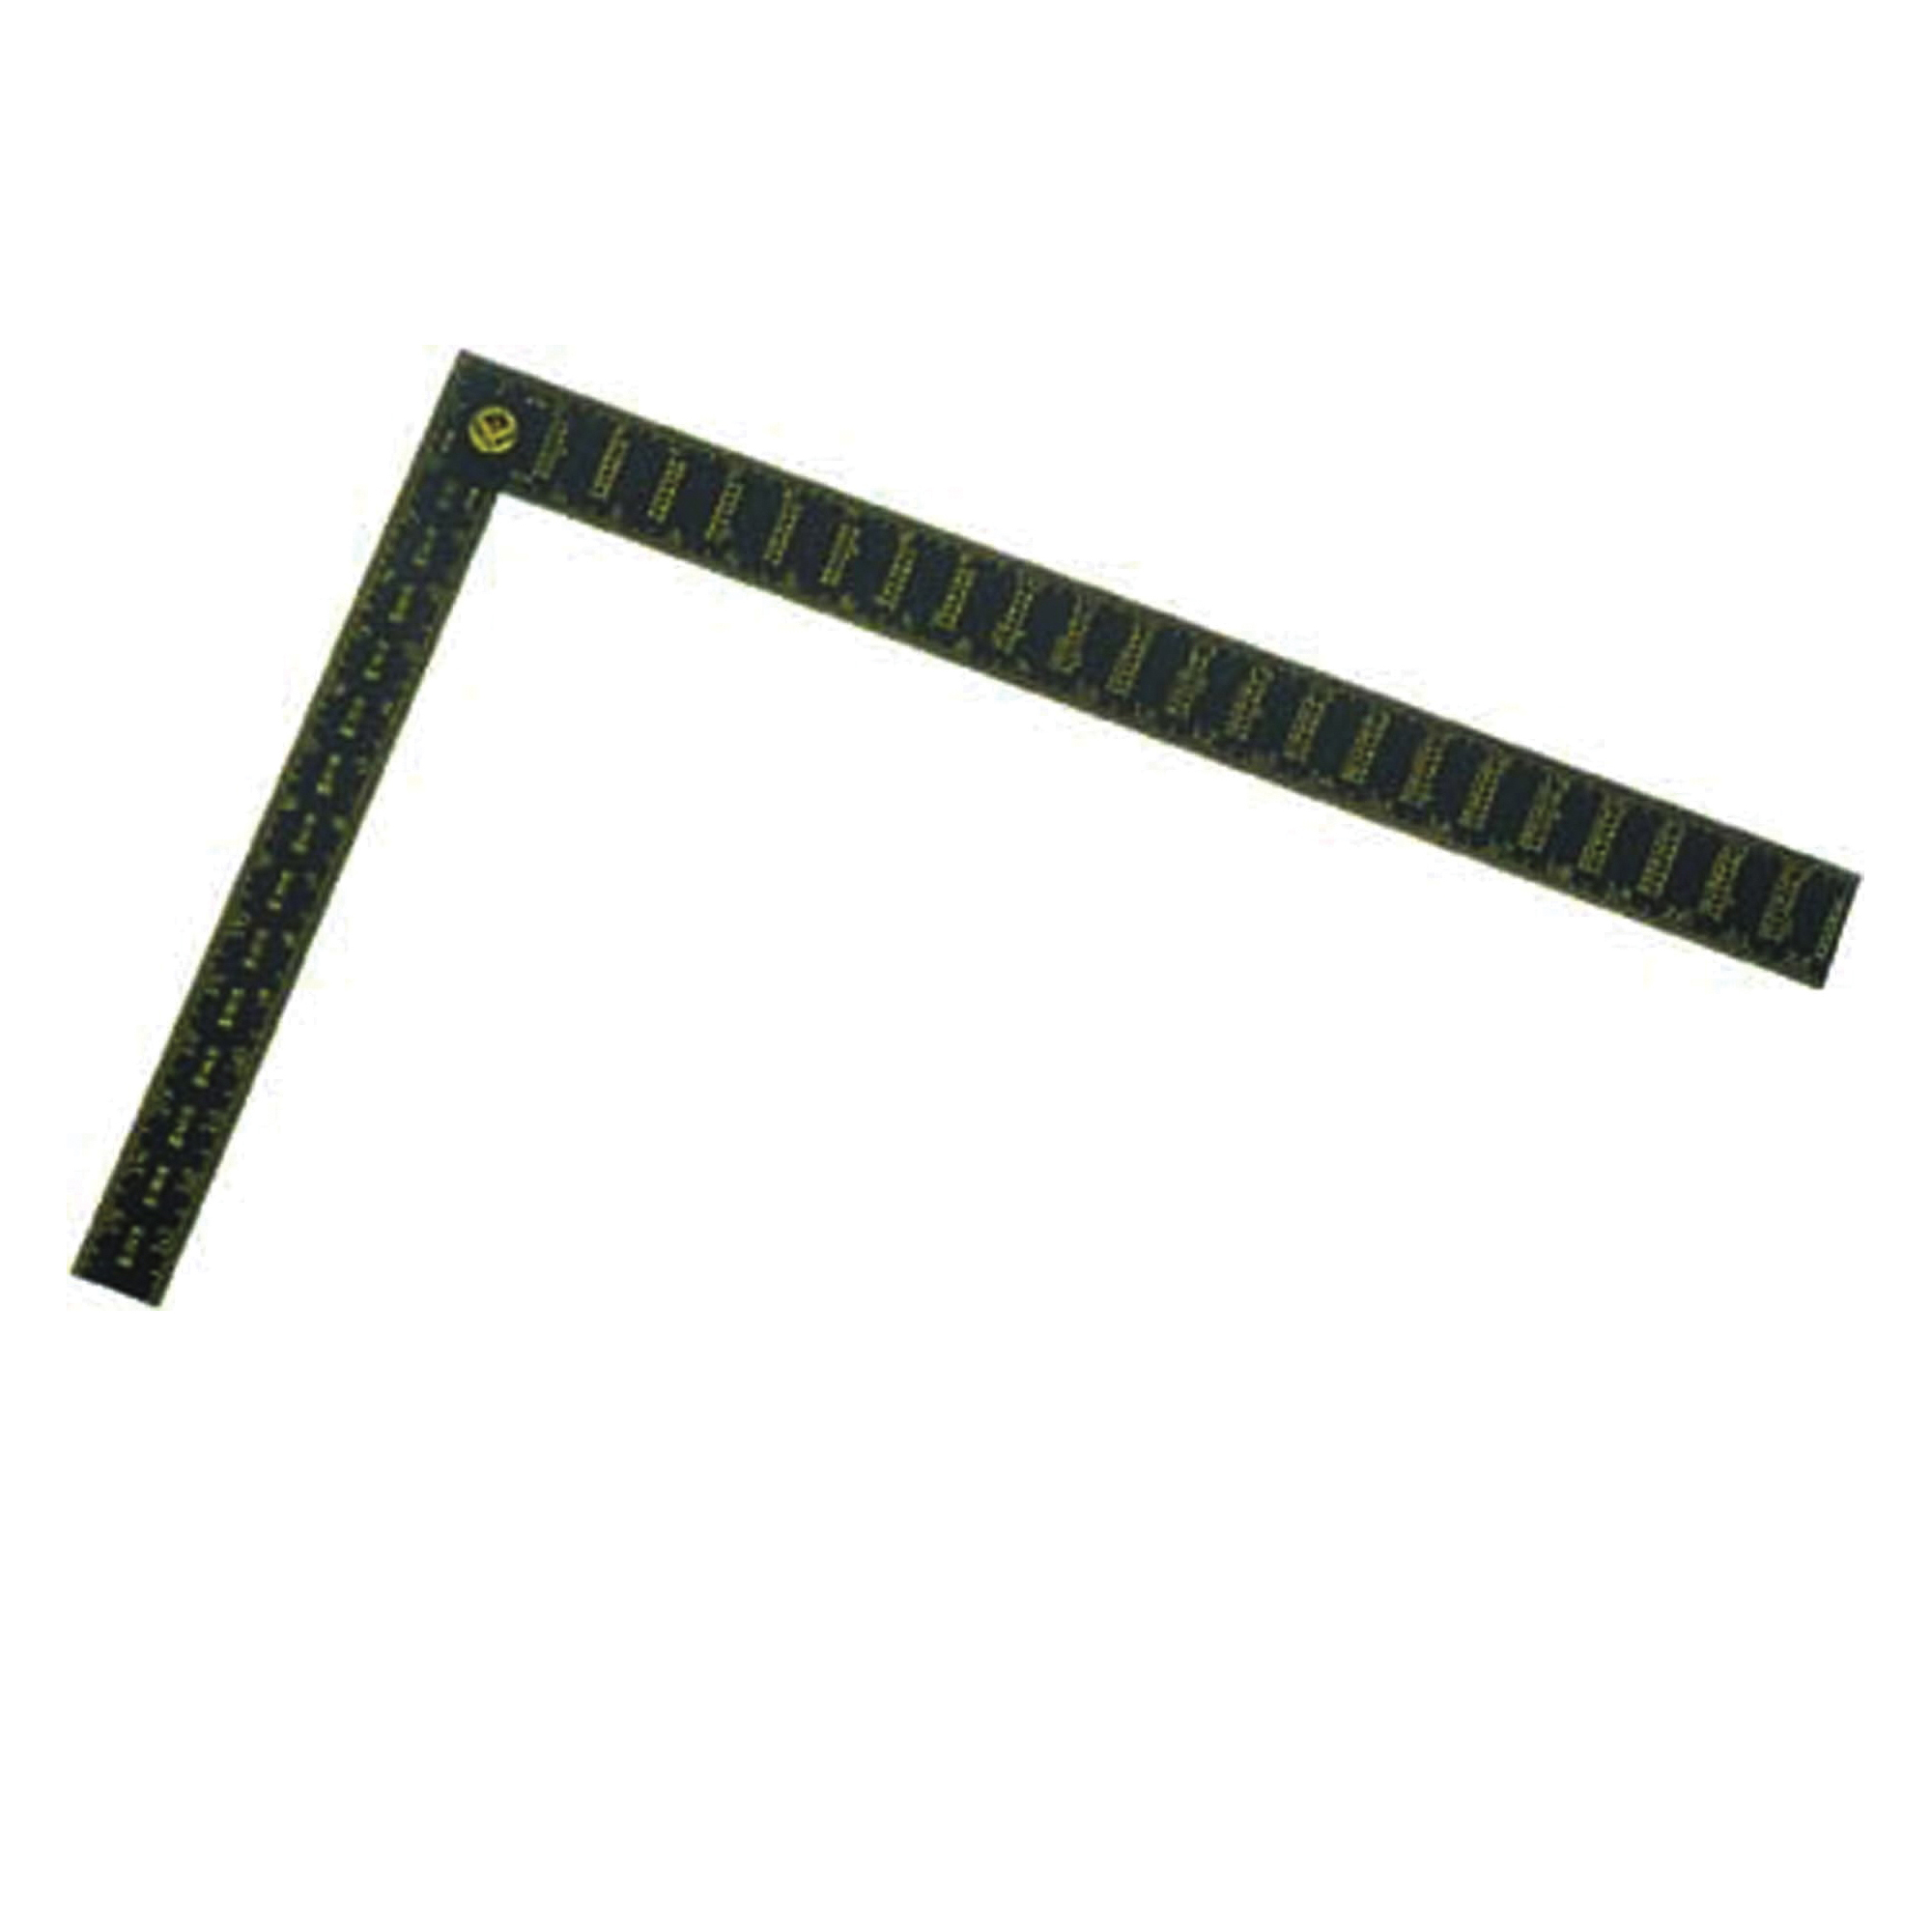 Stanley® 45-011 Premium Rafter Square, 16 x 24 in, 1/16 in, 1/8 in Face, 1/16 in, 1/8 in, 1/12 in Back Graduation, 16 x 1-1/2 in Tongue, Aluminum